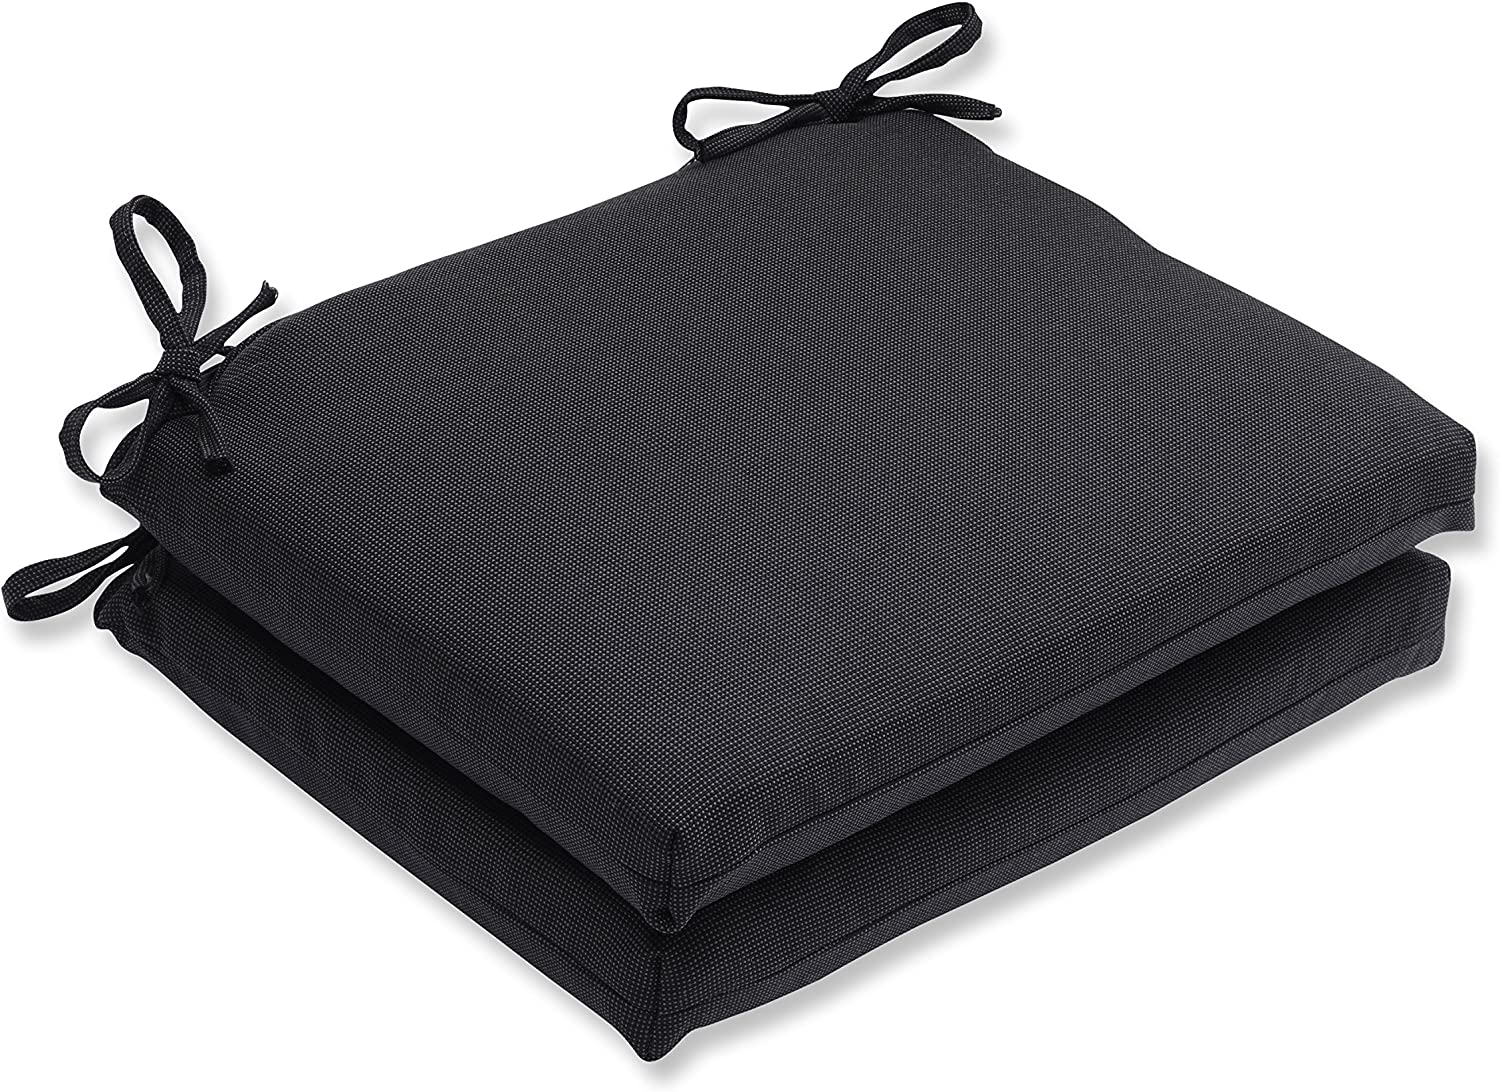 Pillow Perfect Outdoor Indoor Tweed Squared Corners Seat Cushion Set of 2 , Black